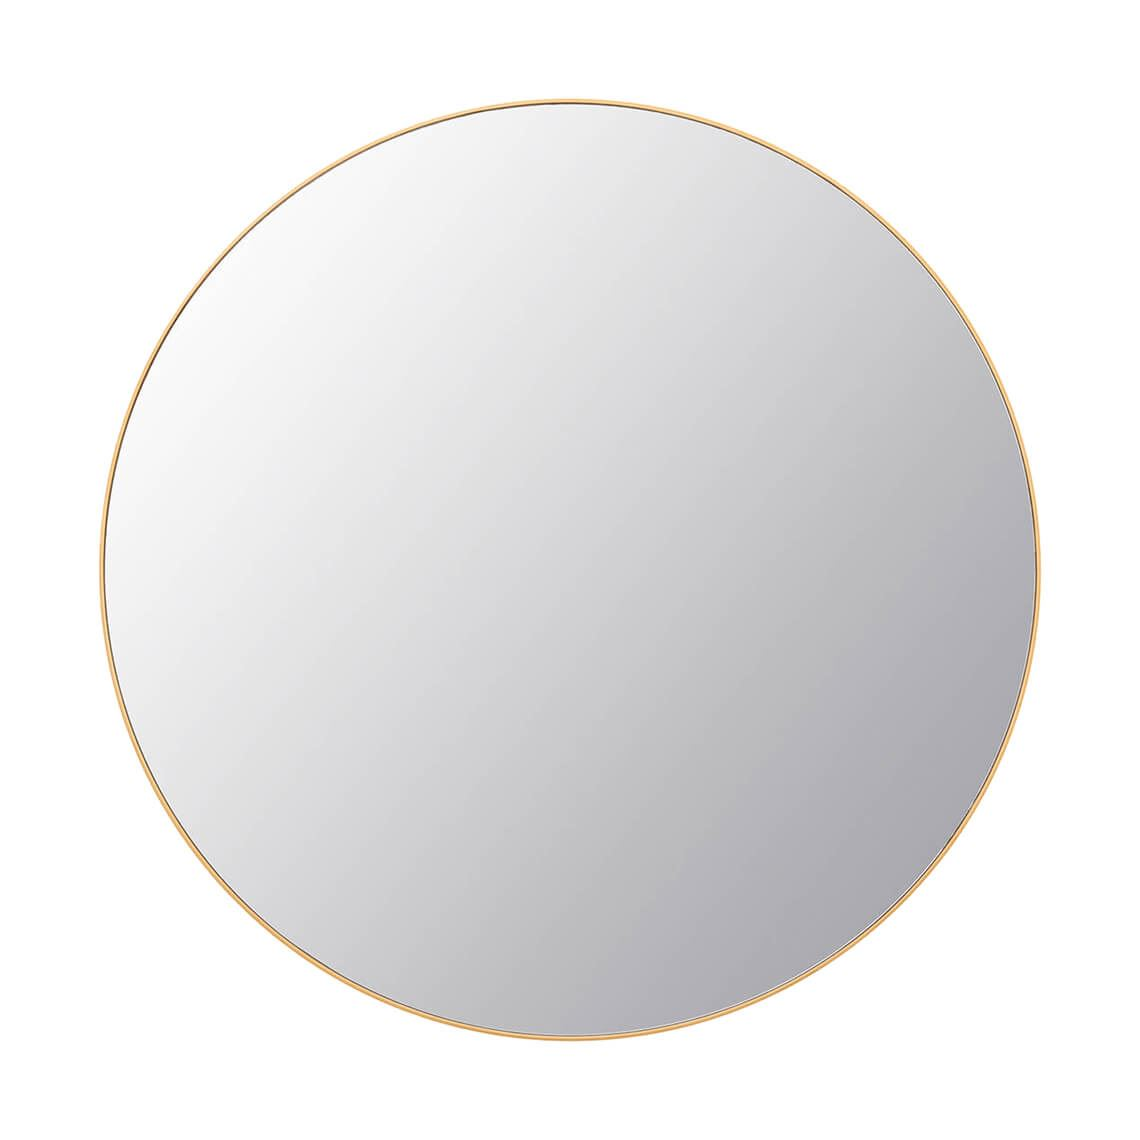 Dylan Mirror Colour Size W 90cm x D 2cm x H 90cm in Gold Wood/Mirrored Glass Freedom by Freedom, a Mirrors for sale on Style Sourcebook